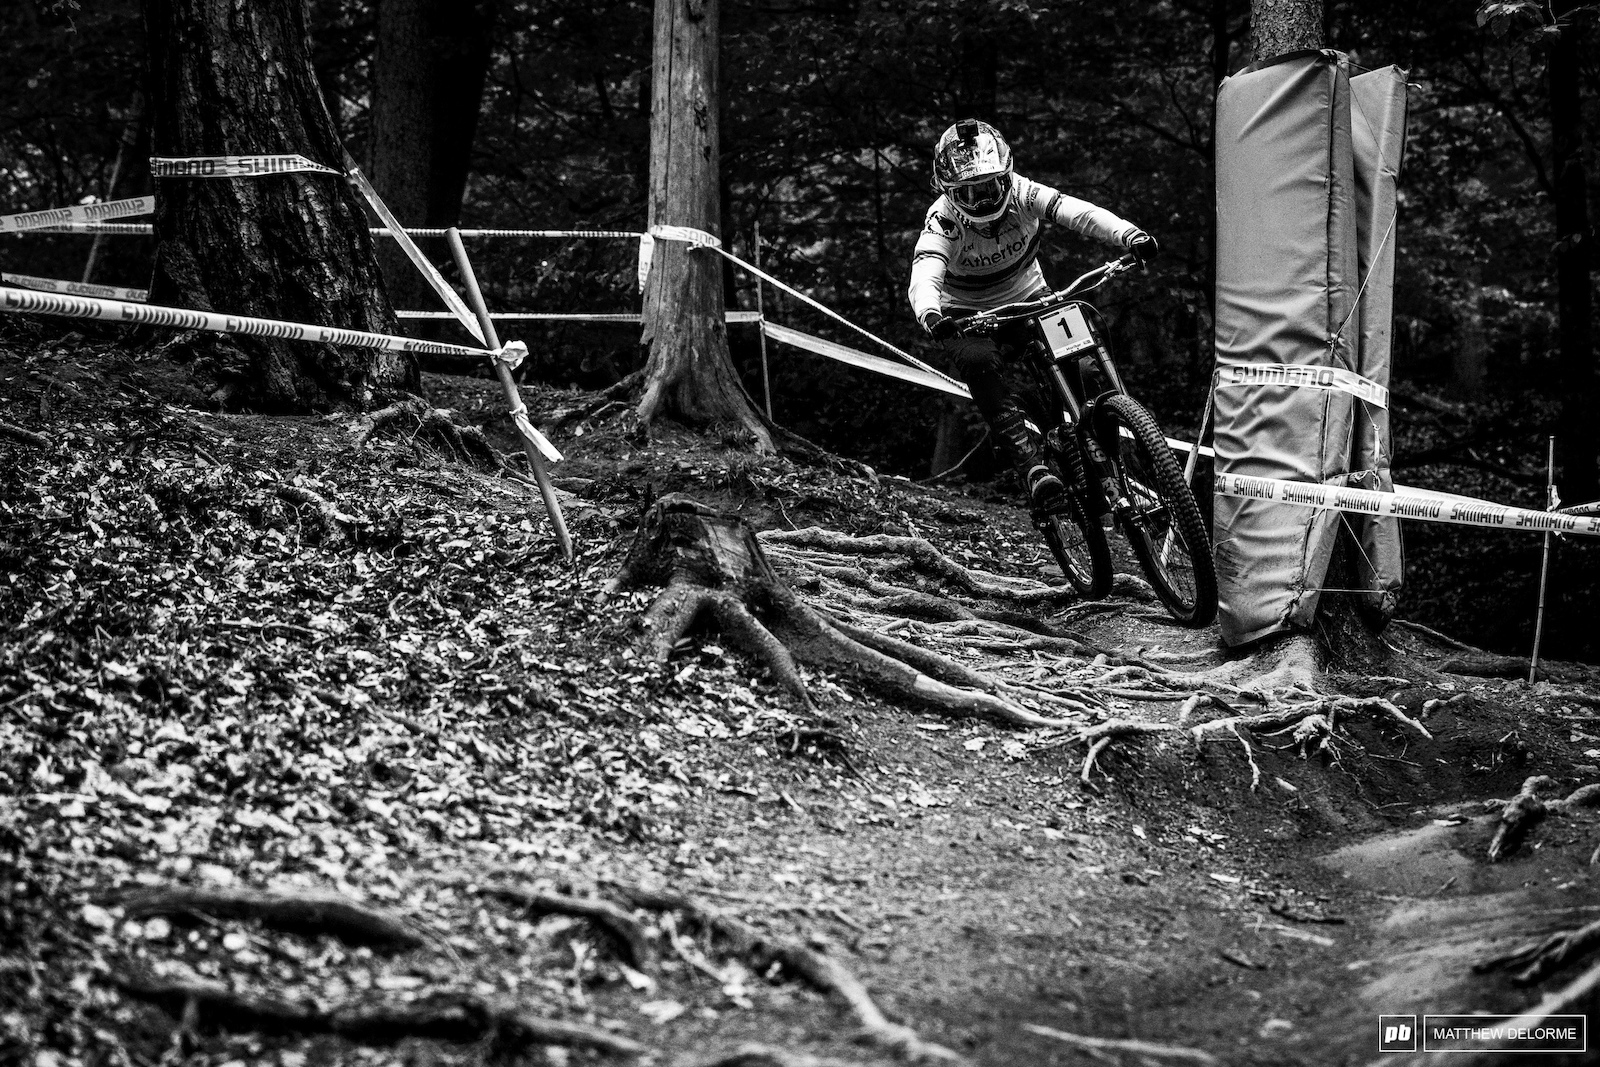 Rachel Atherton skimming over the roots.